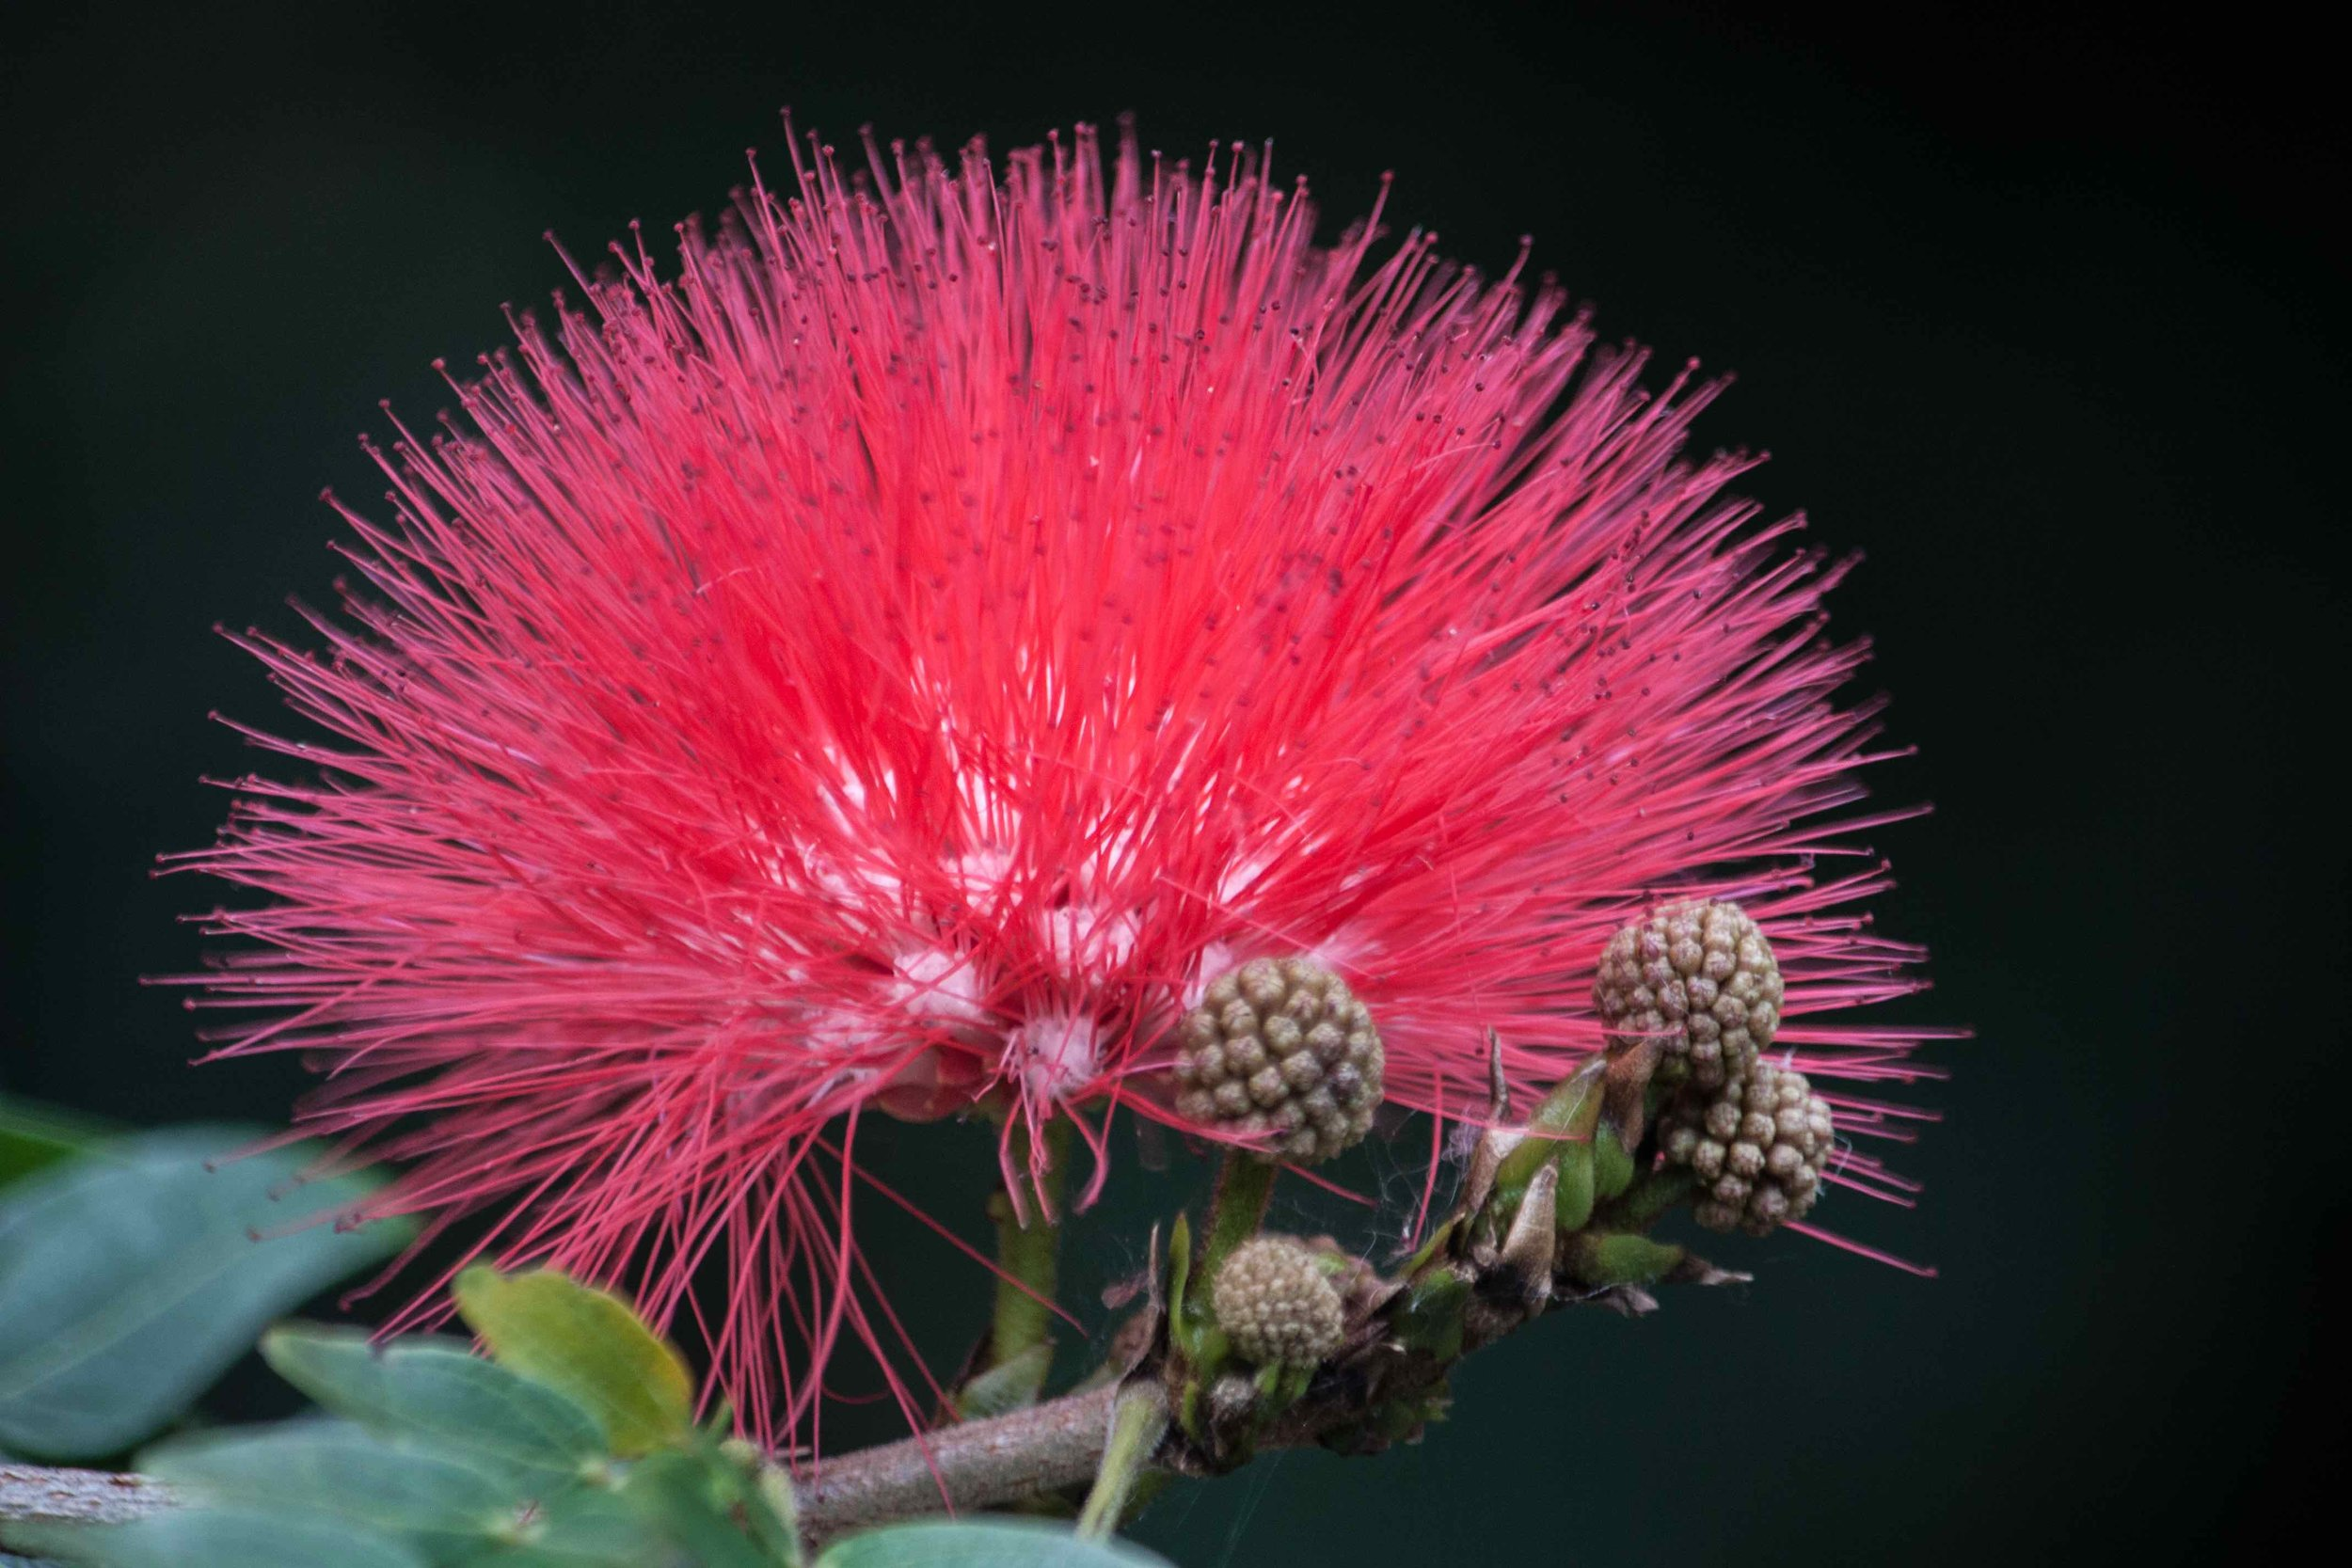 Australian Caliandra Tweedie (Red Powder Puff)